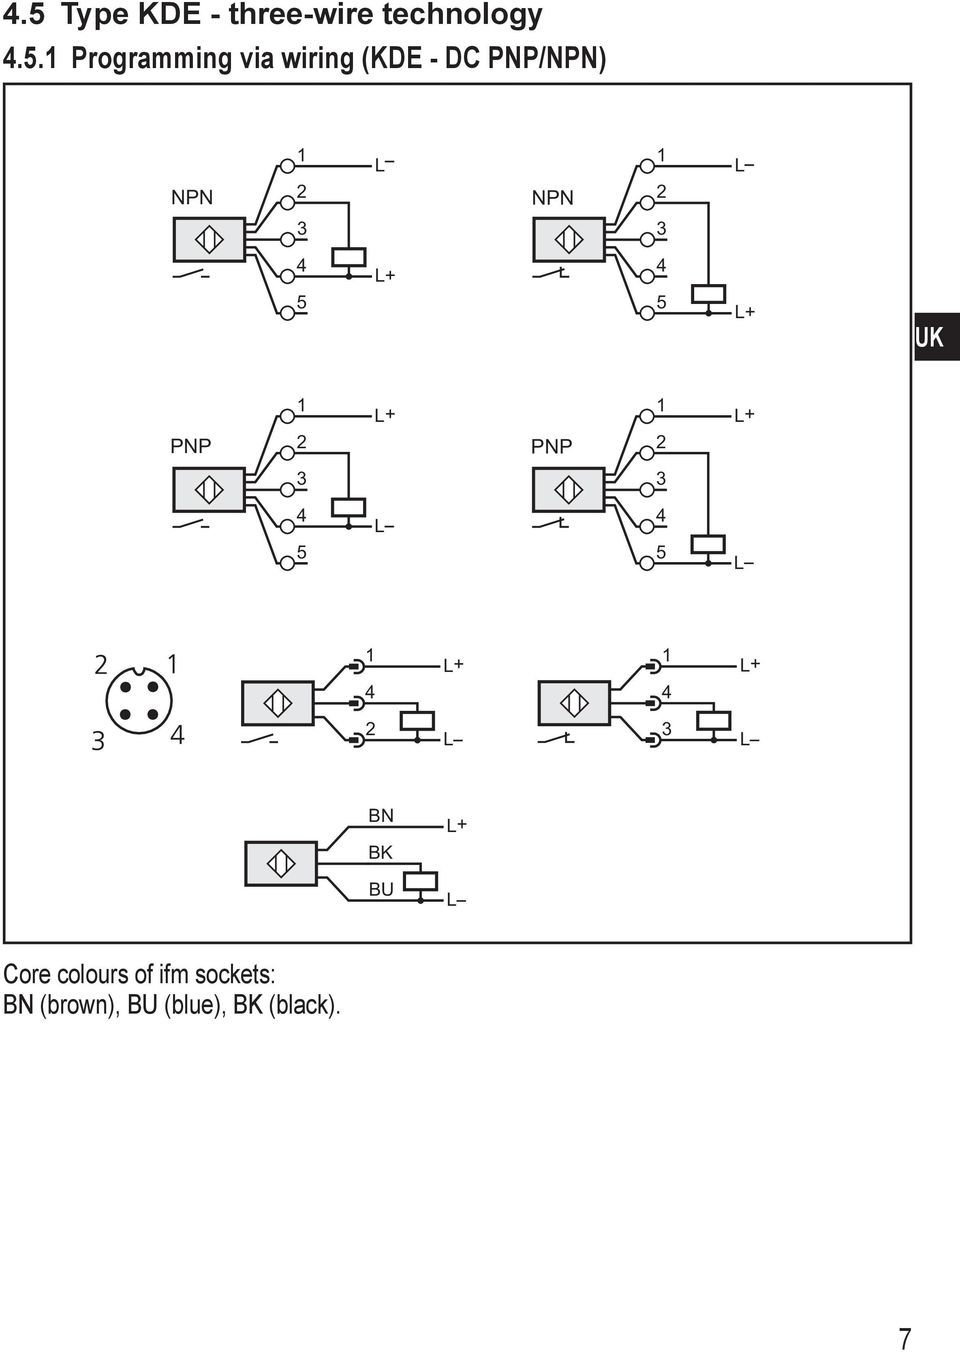 Ifm Capacitive Proximity Sensor Wiring Diagram 5 Wire Operating Instructions Sensors Pdf On Accessories Usb 20 Pinout